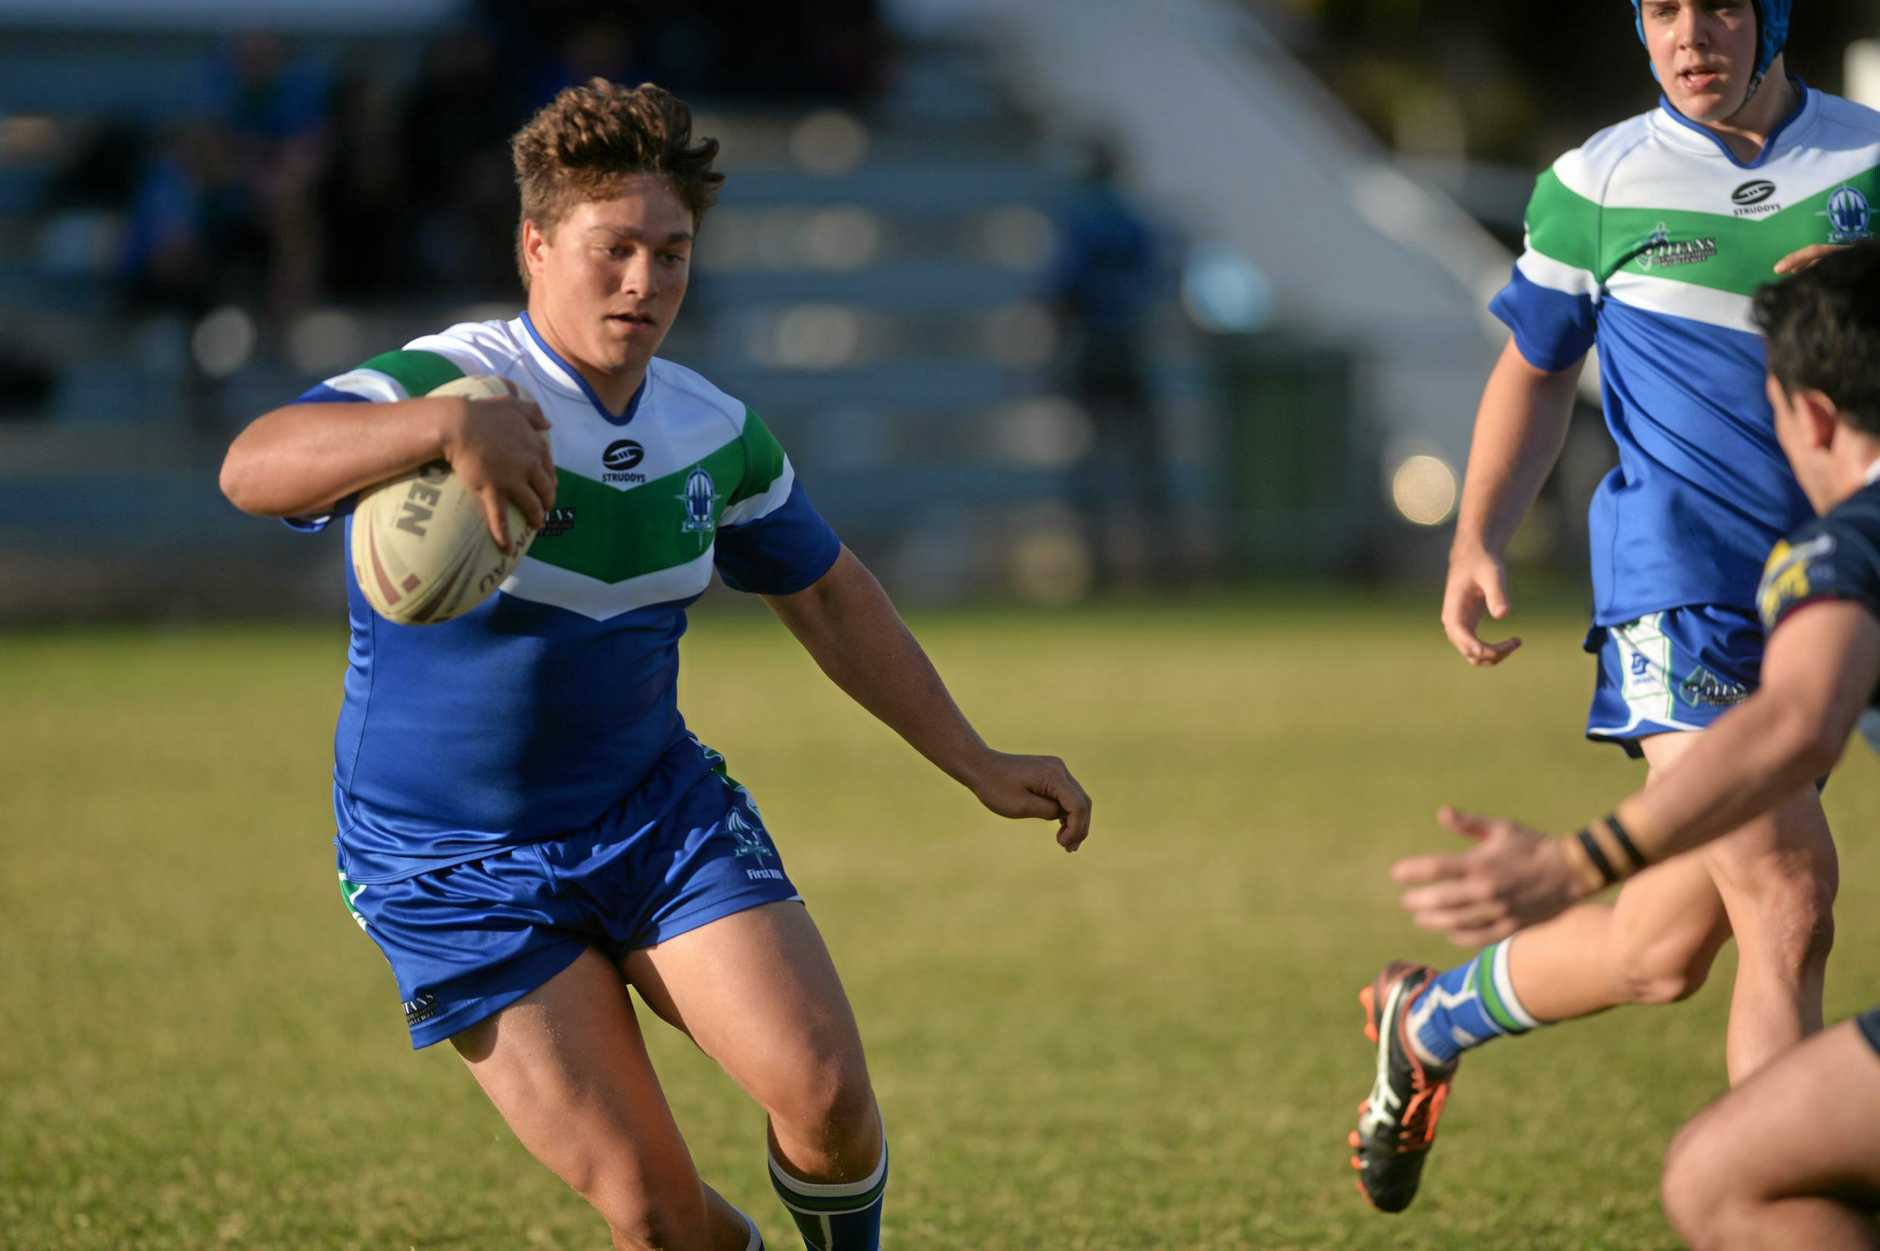 Mackay State High School v The Cathedral College in the Aaron Payne Cup at Mackay's Junior Rugby League Fields.